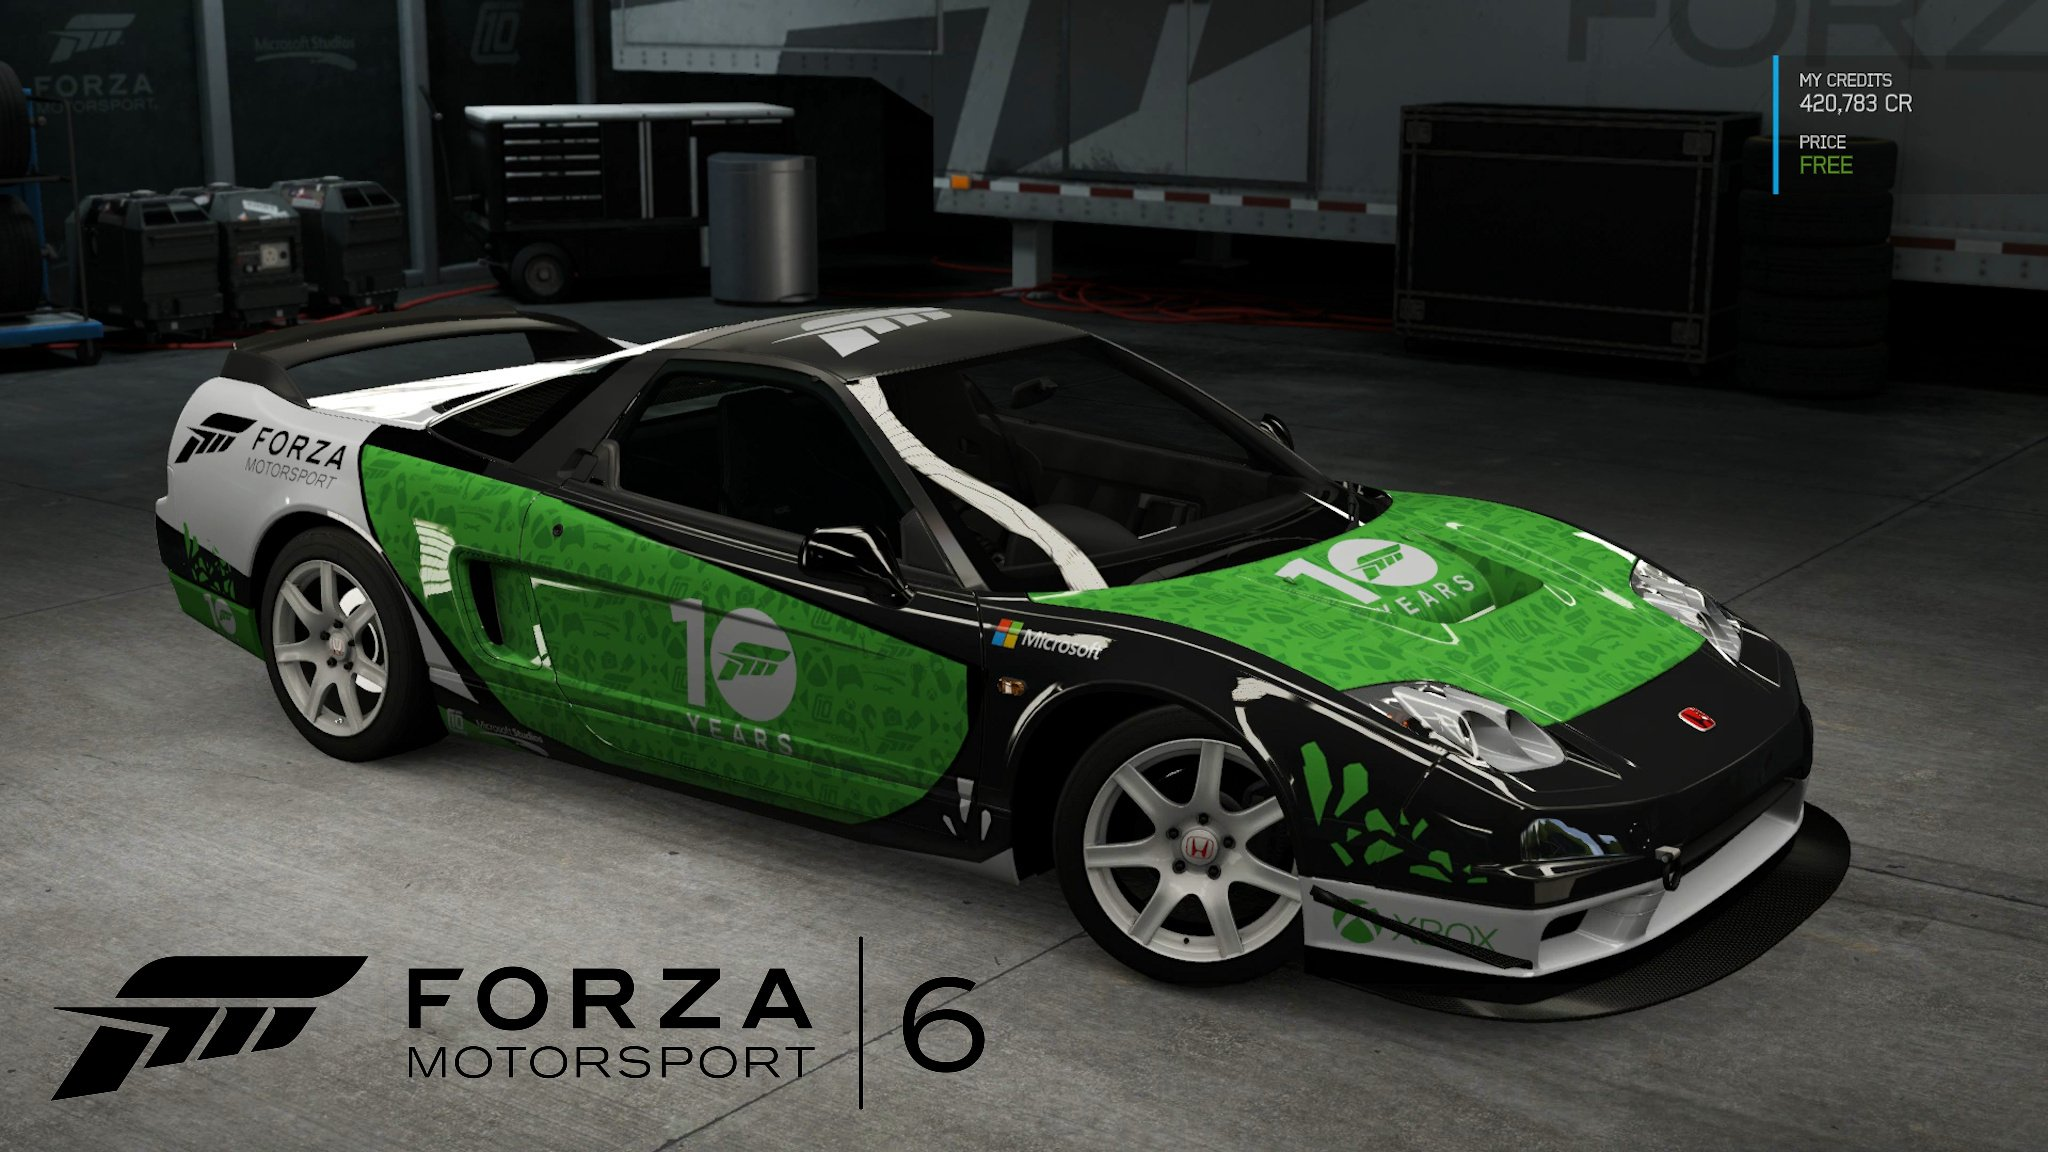 Fast And Furious Cars Hd Wallpapers How To Get Free And Premium Dlc Cars In Forza Motorsport 6